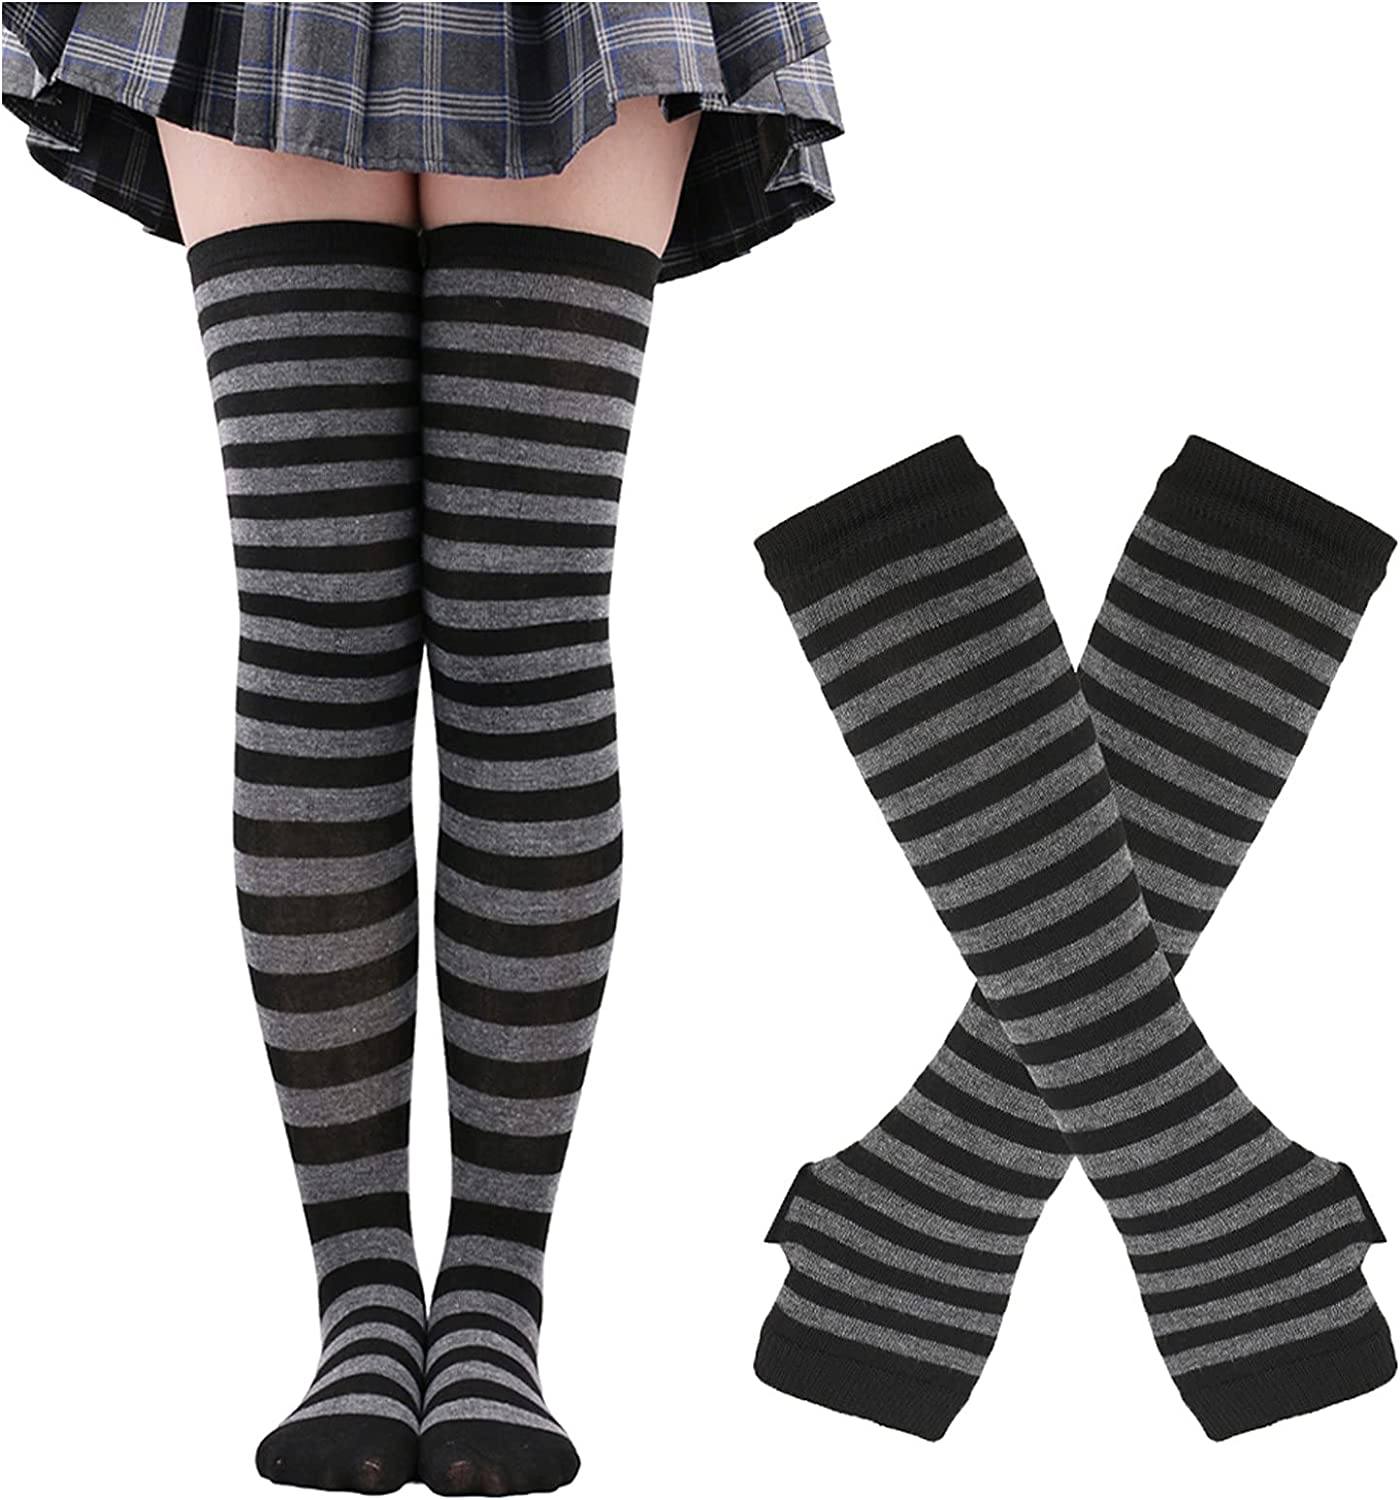 Womens Over Knee Long Socks Striped Thigh High Sock Halloween Cosplay Stocking Vintage Winter Warm Socks with Gloves